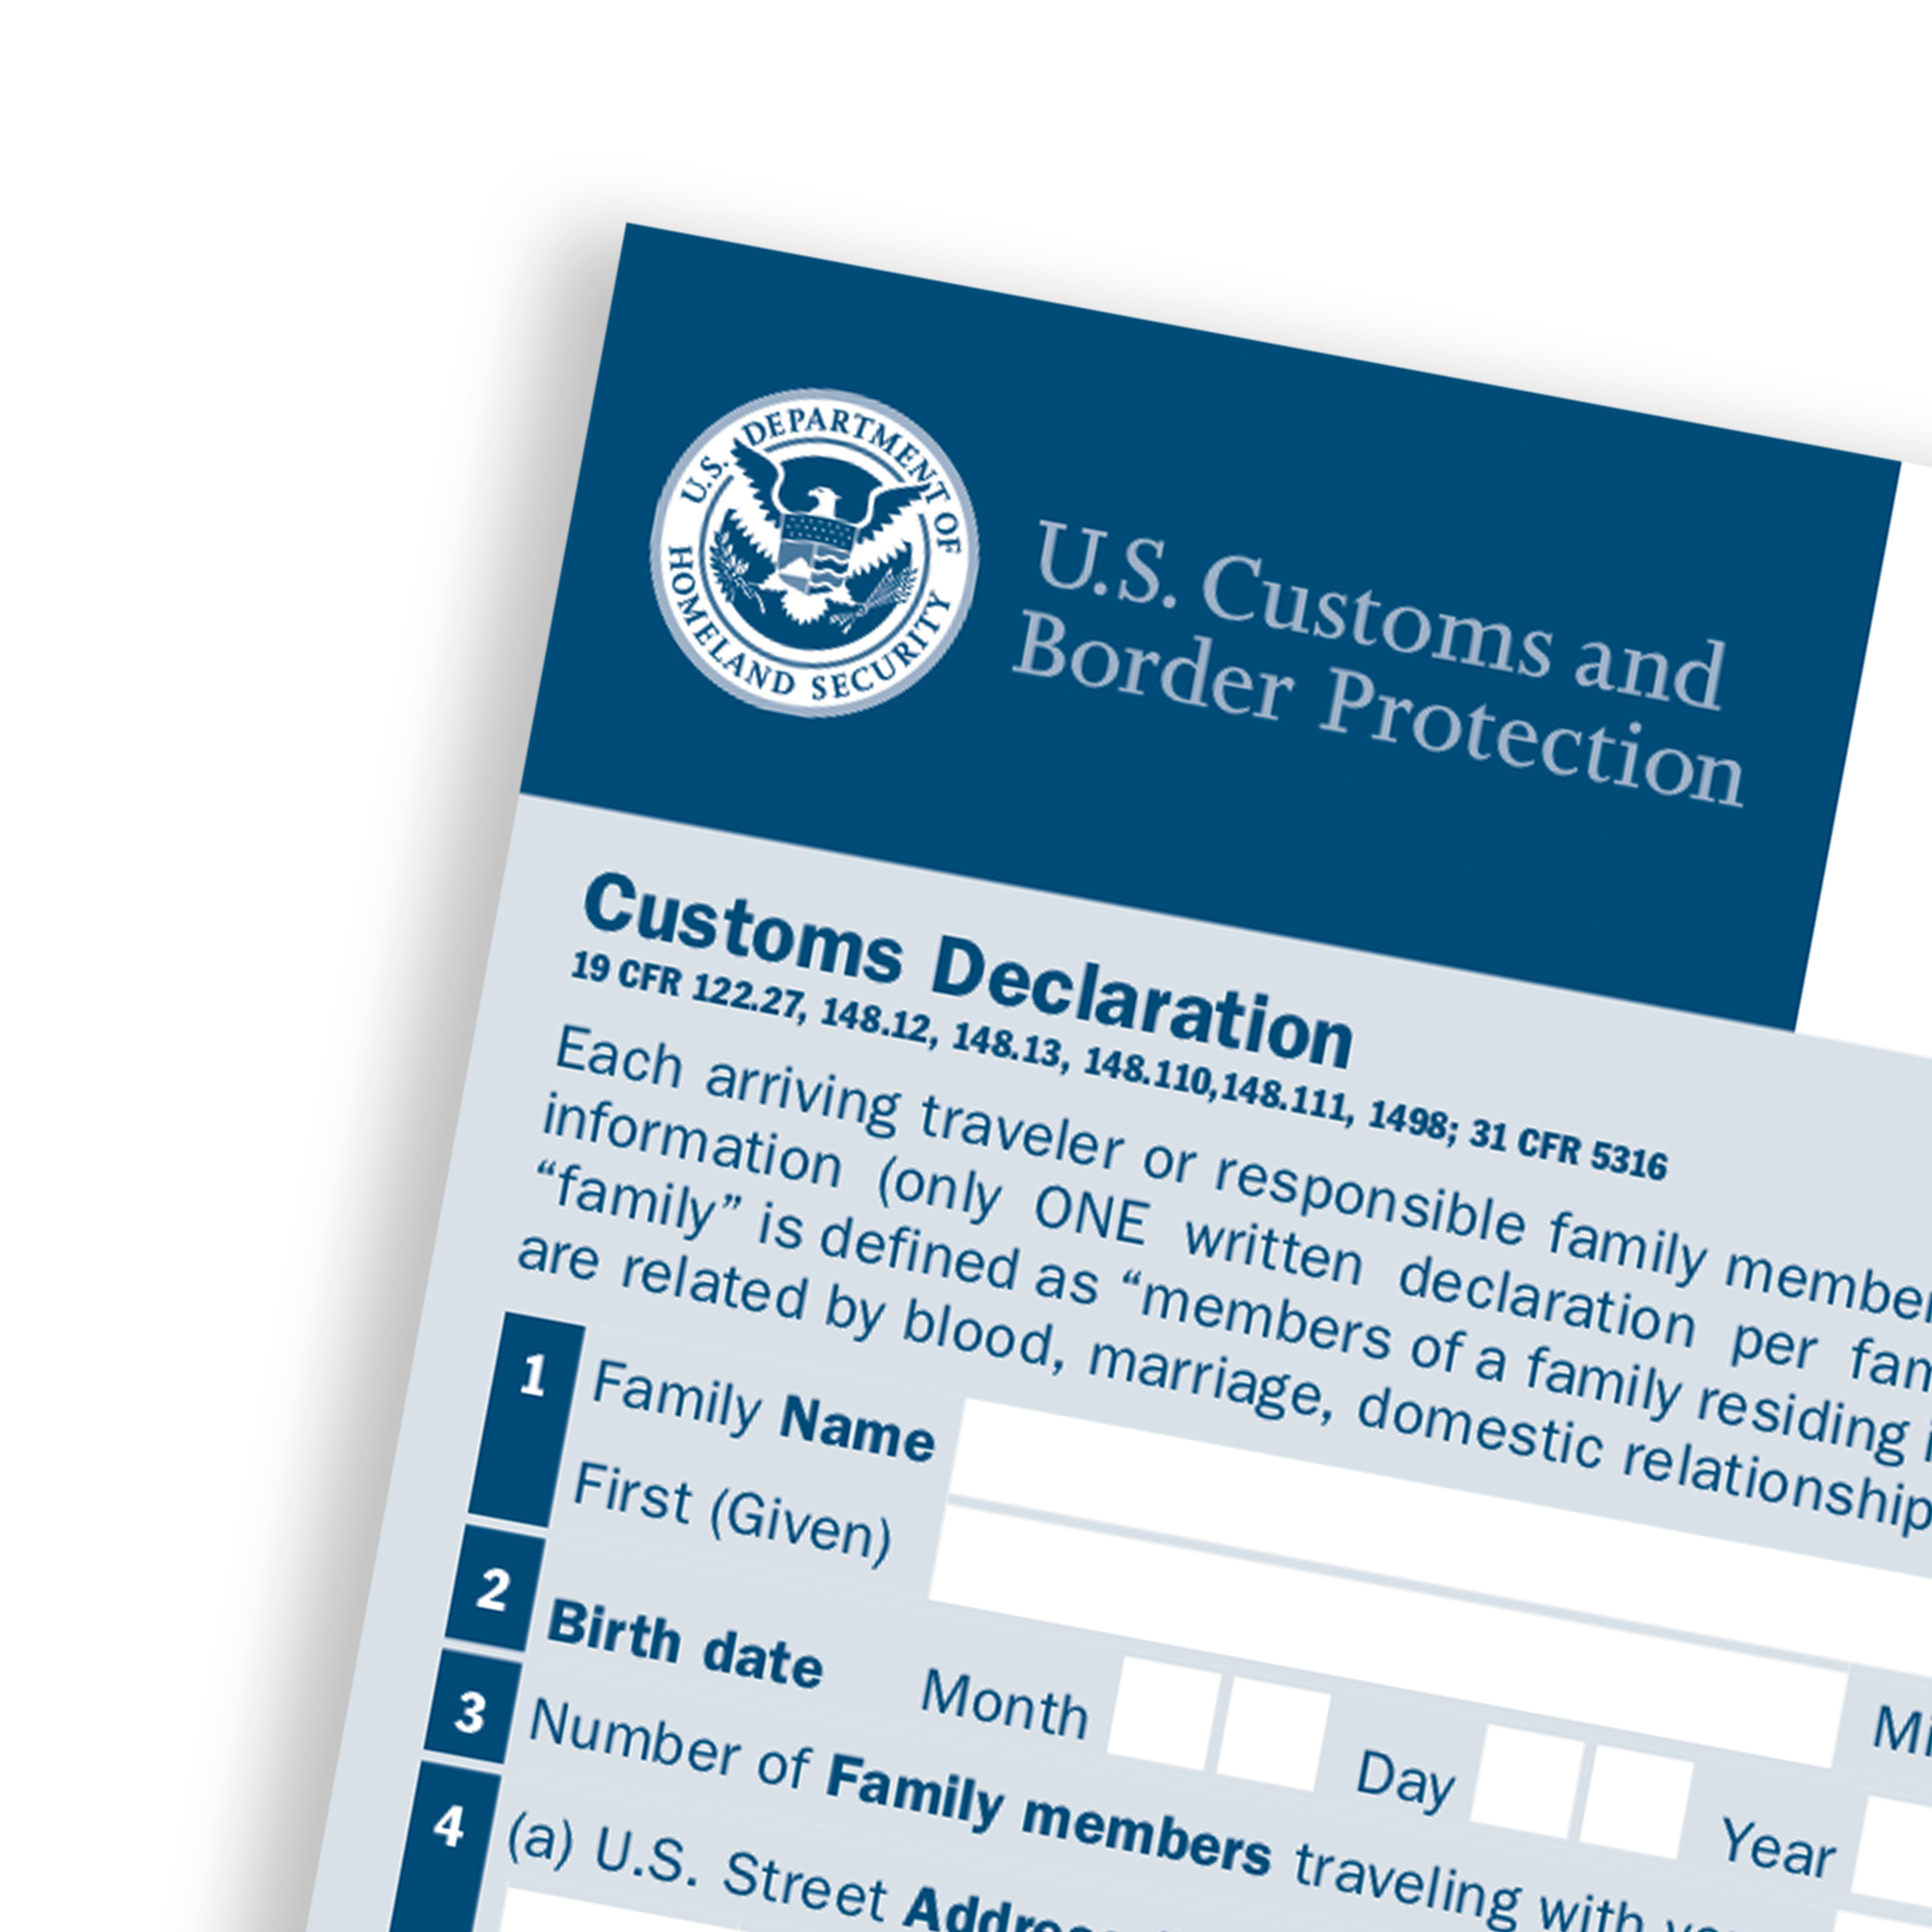 Use the U.S. Customs Declaration Form to declare all food, plant, and agricultural items.